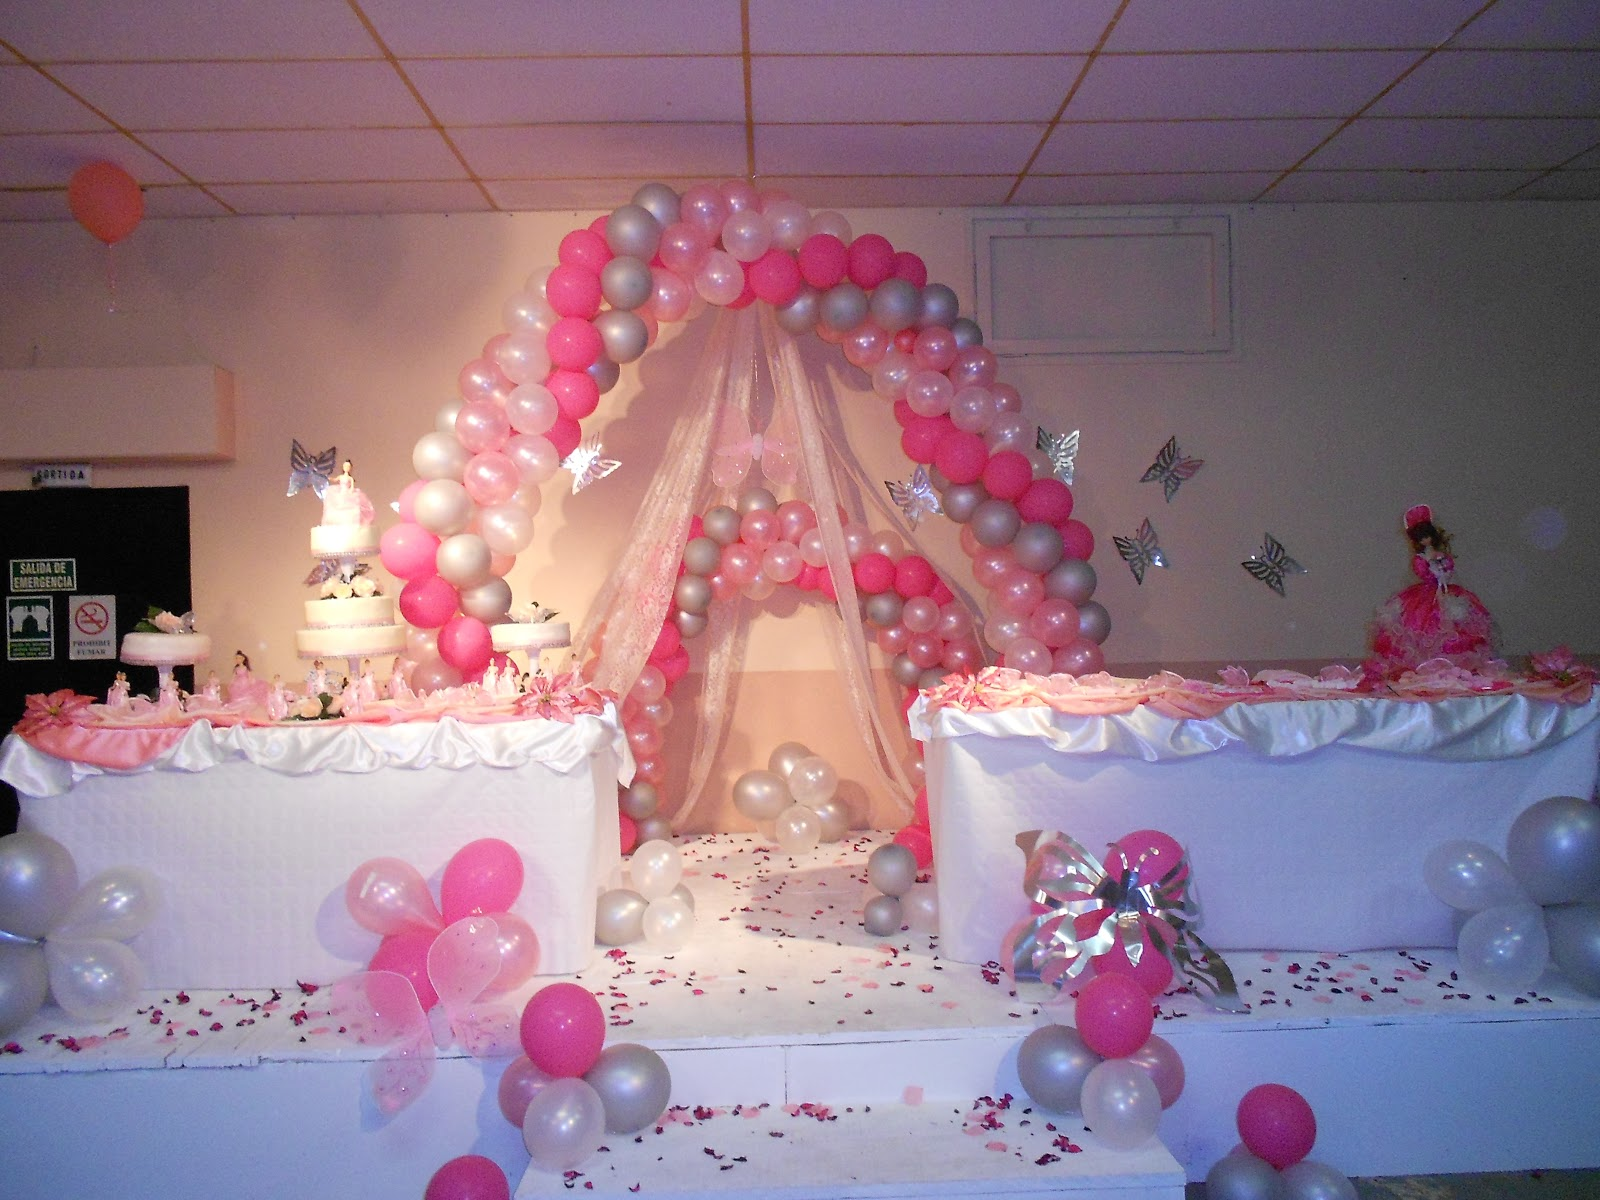 1000 images about arreglos de globos on pinterest On arreglos de quinceanera